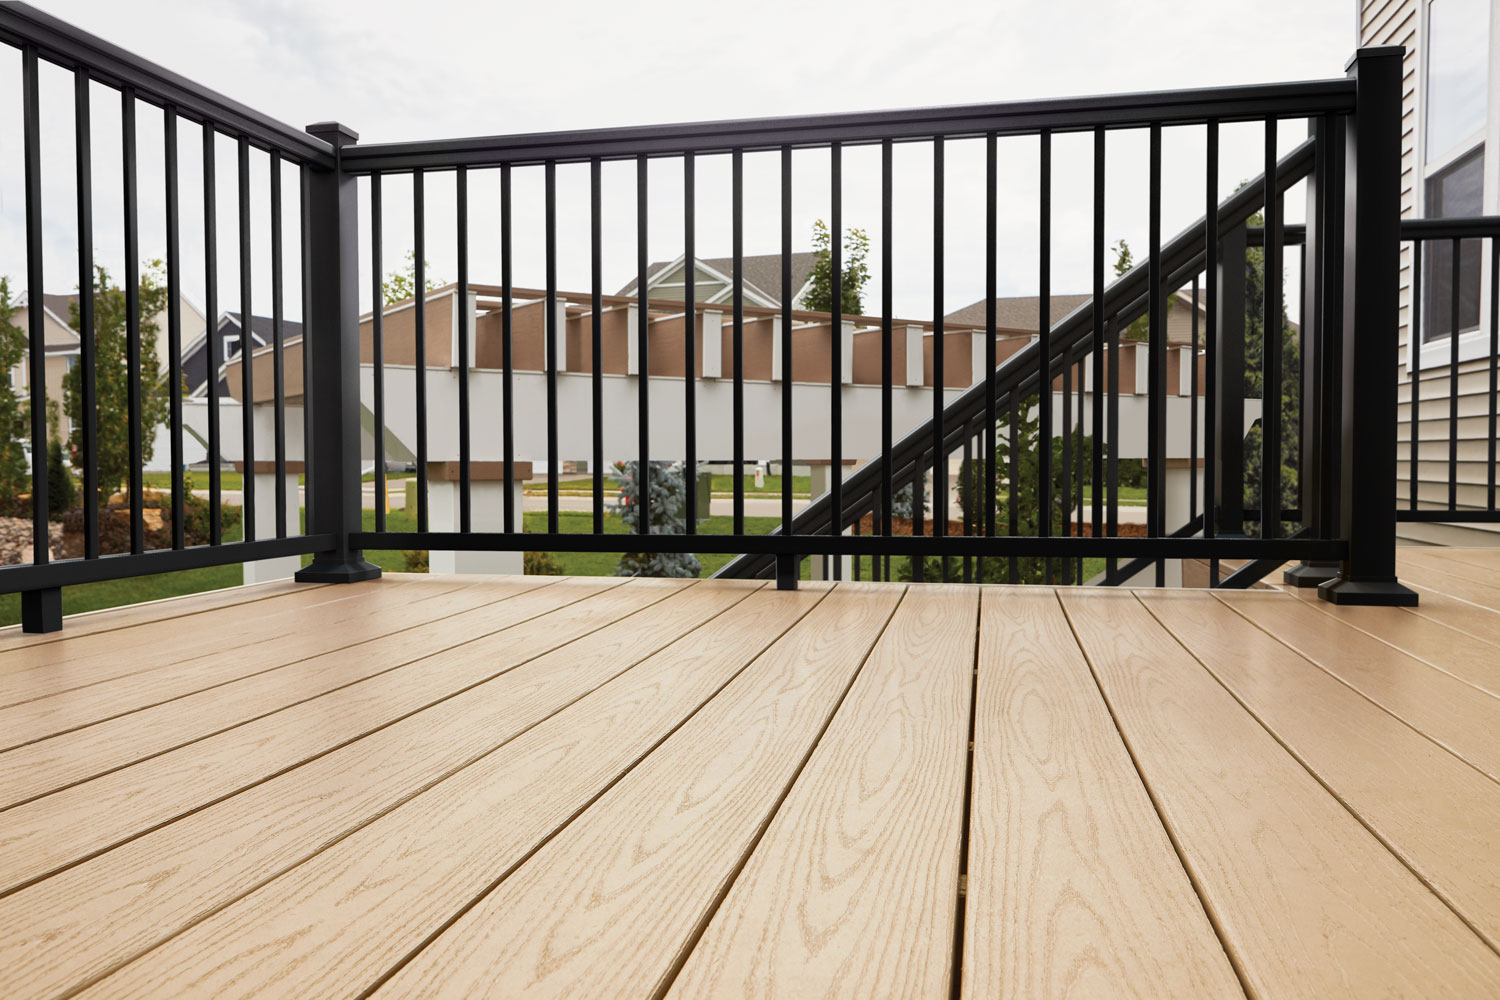 TimberTech Impression Rail Express Railing Collection in Black